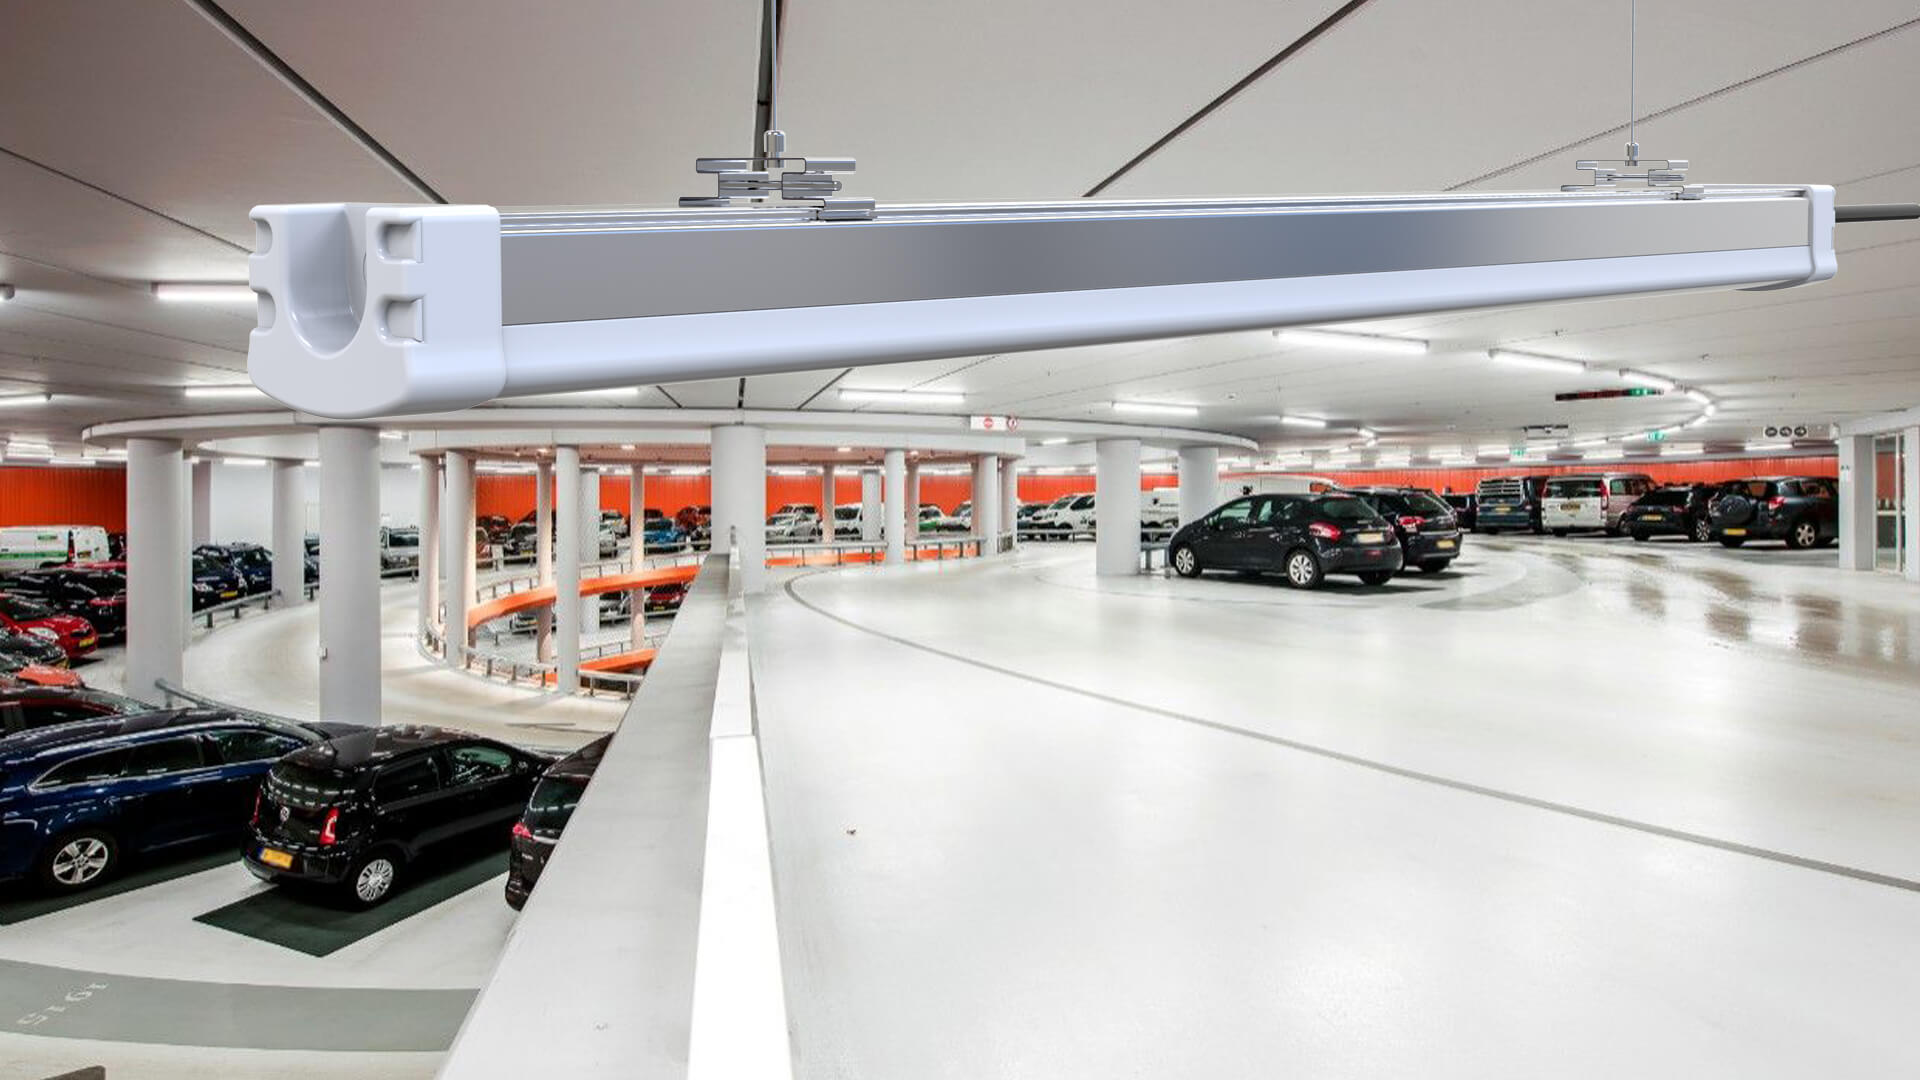 Parkade Indoor Garage Lights Banner Image